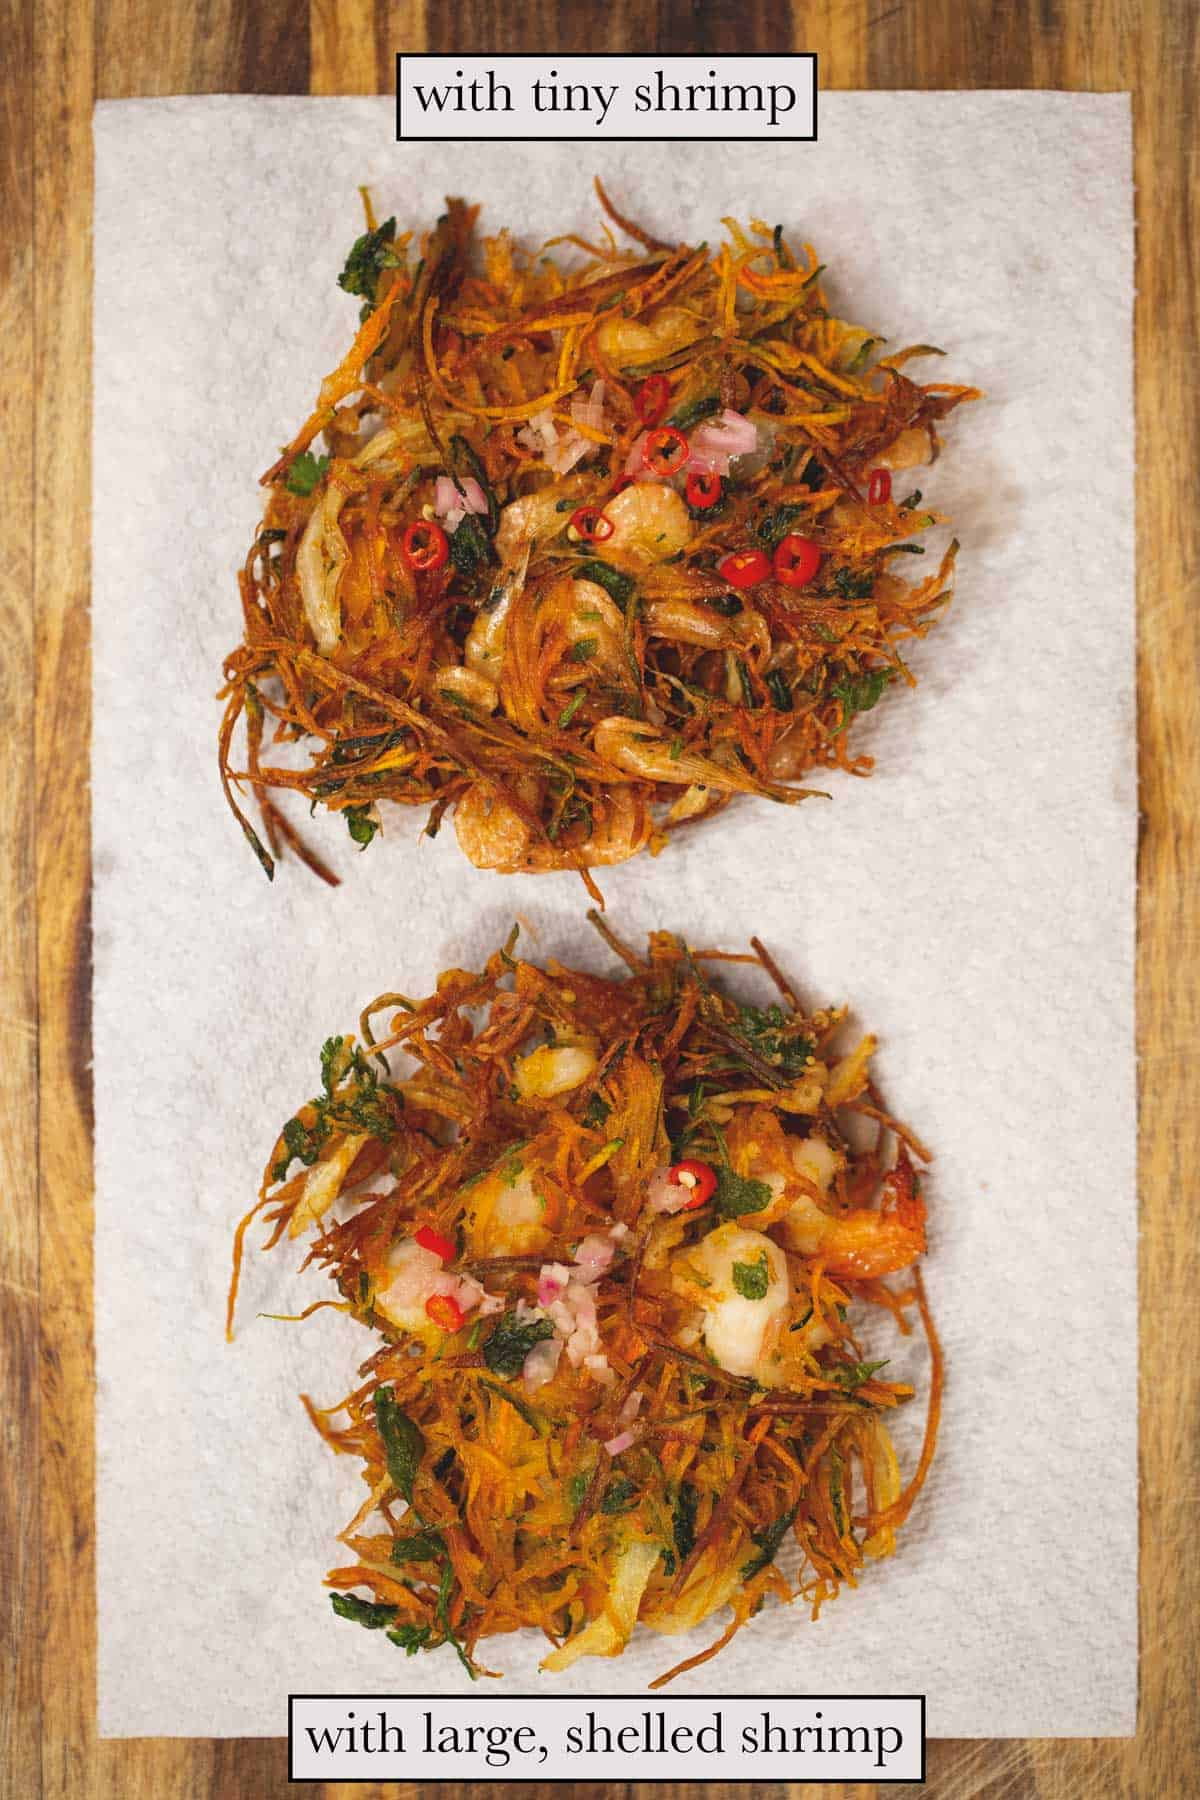 top view of two fried ukoys, one with tiny shrimp and the other with large, shelled shrimp